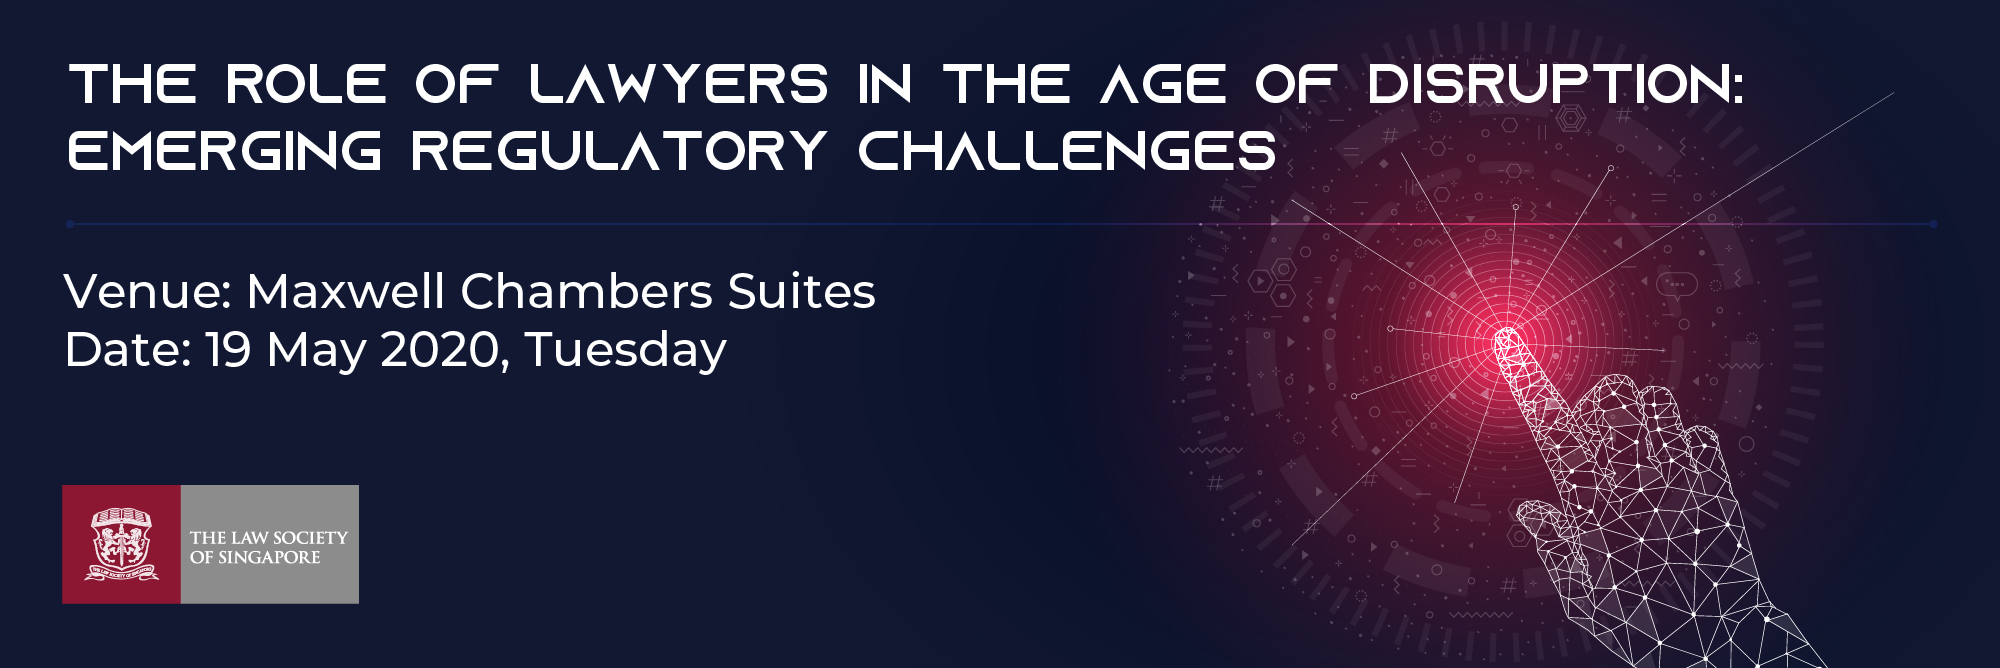 The Role of Lawyers in the Age of Disruption: Emerging Regulatory Challenges Banner Image